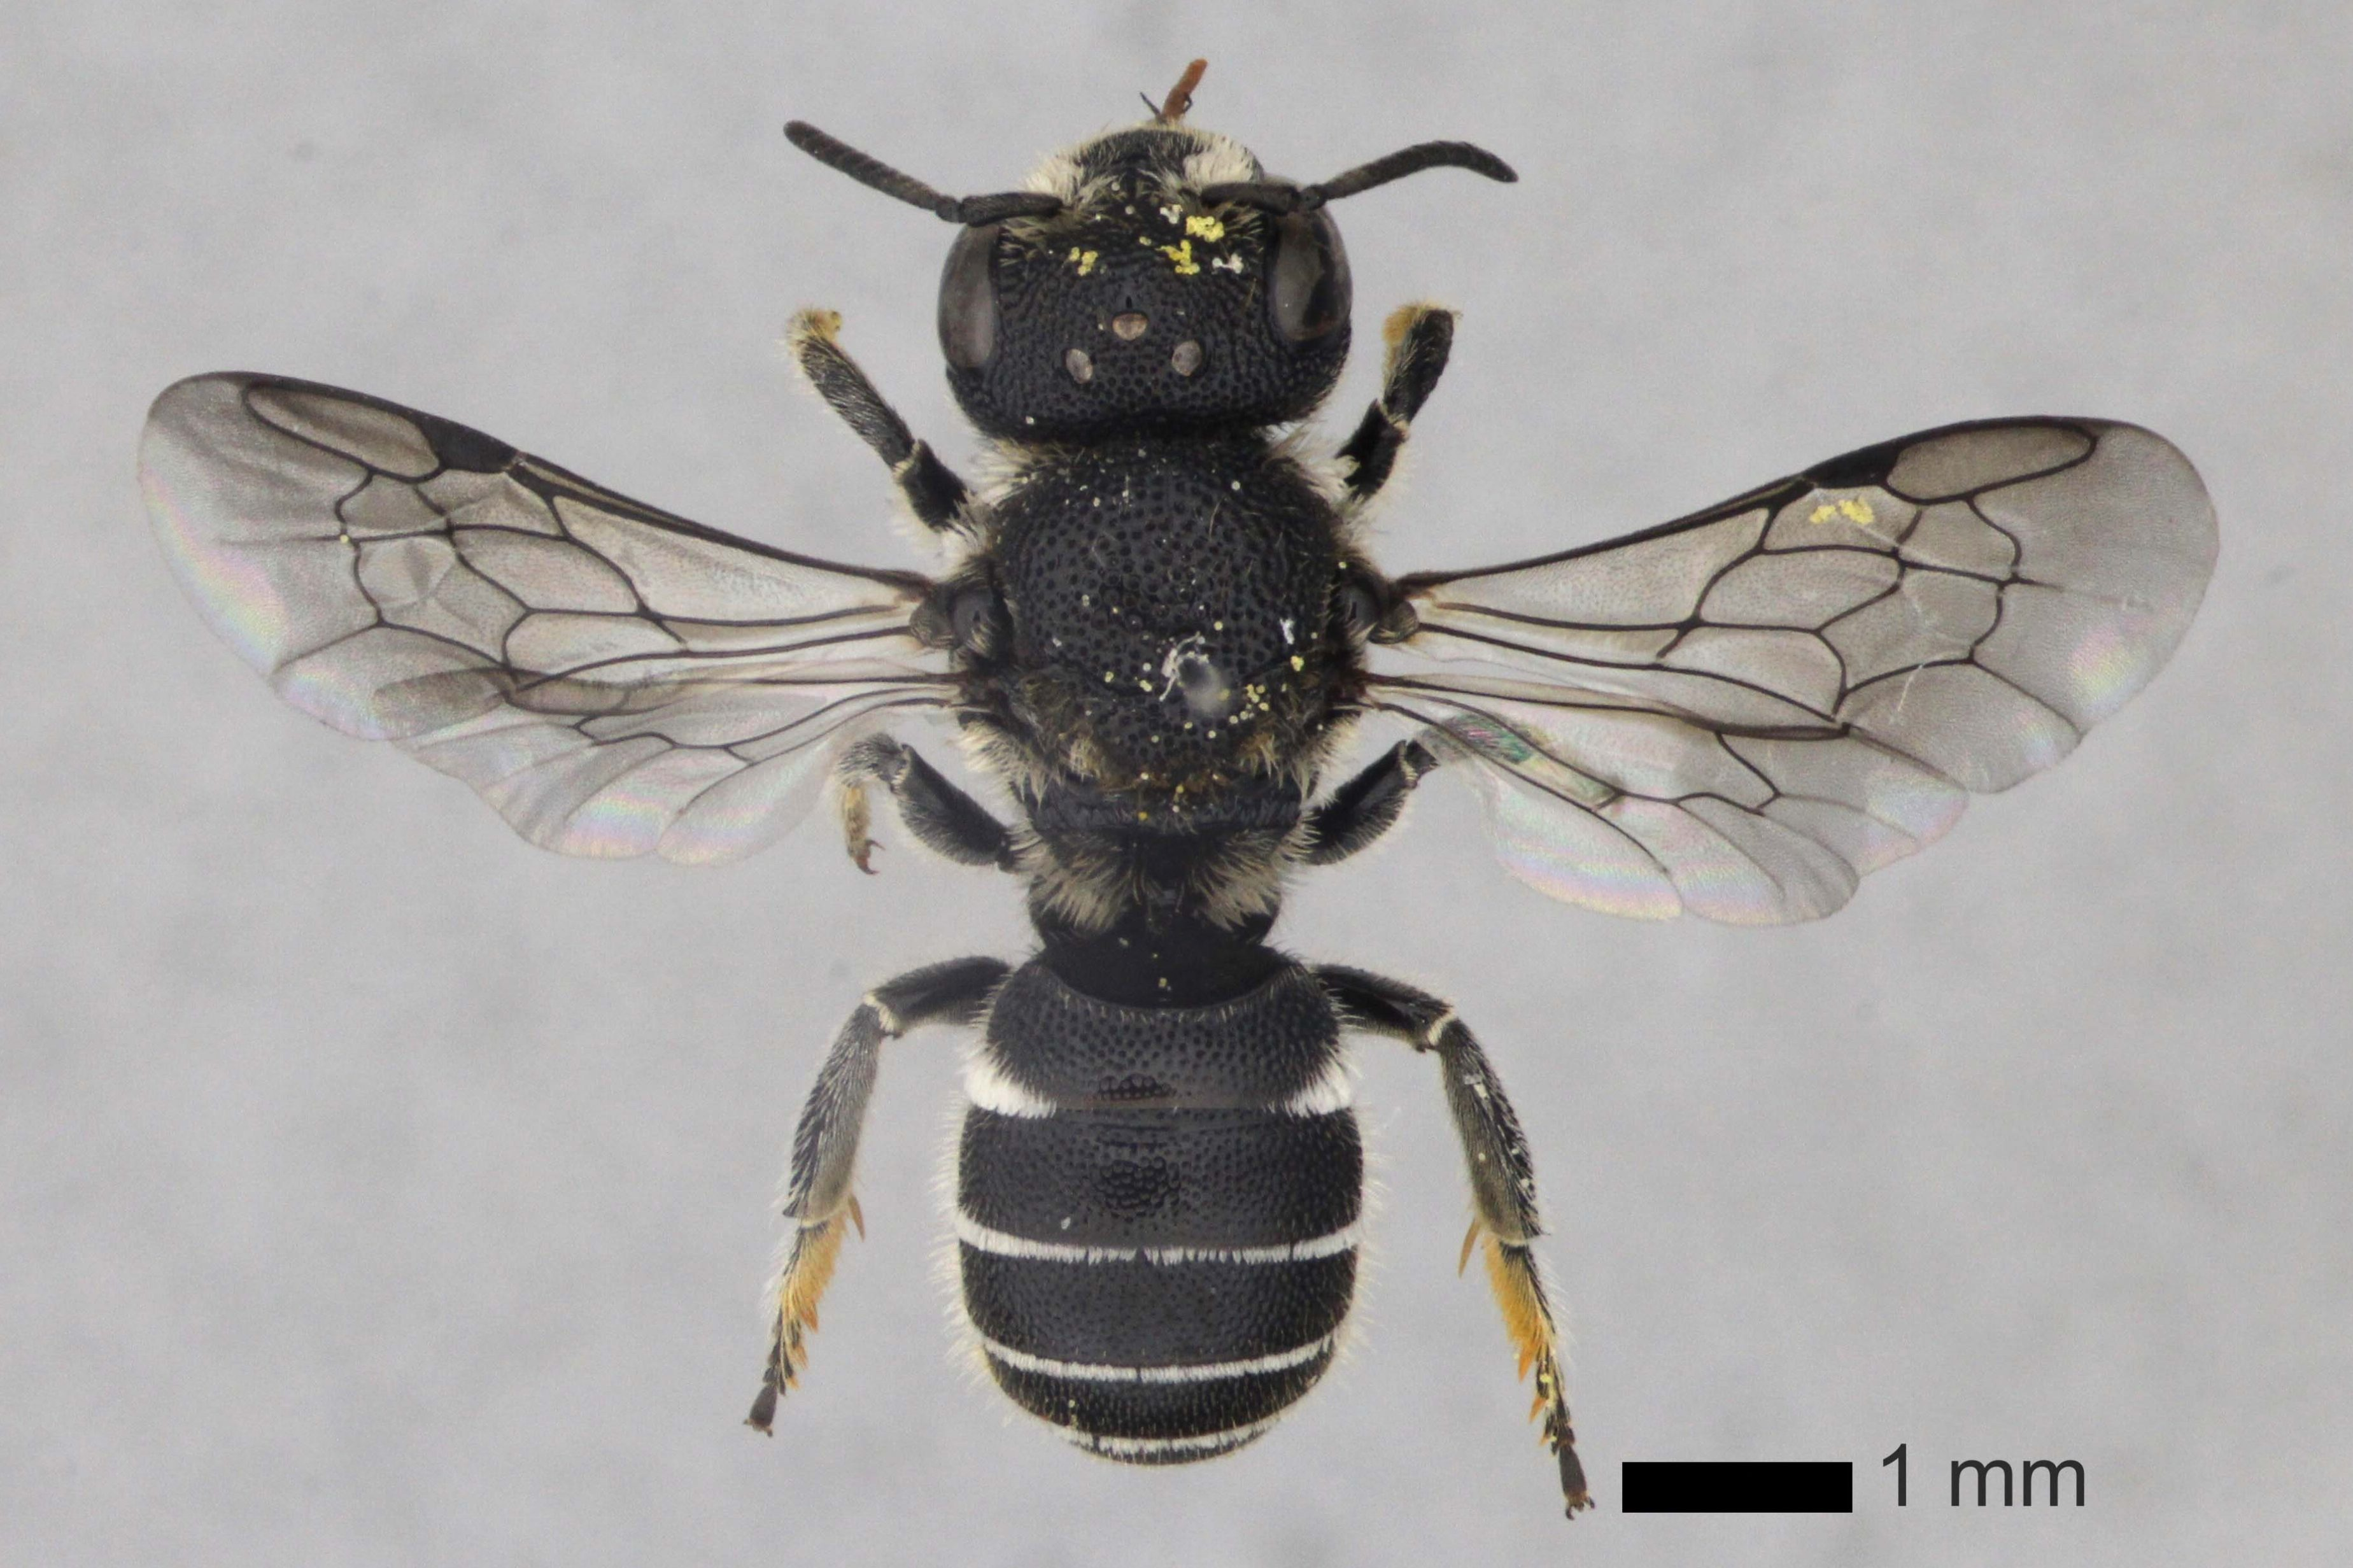 Female Small-headed resin bee, (C) Natural History Museum